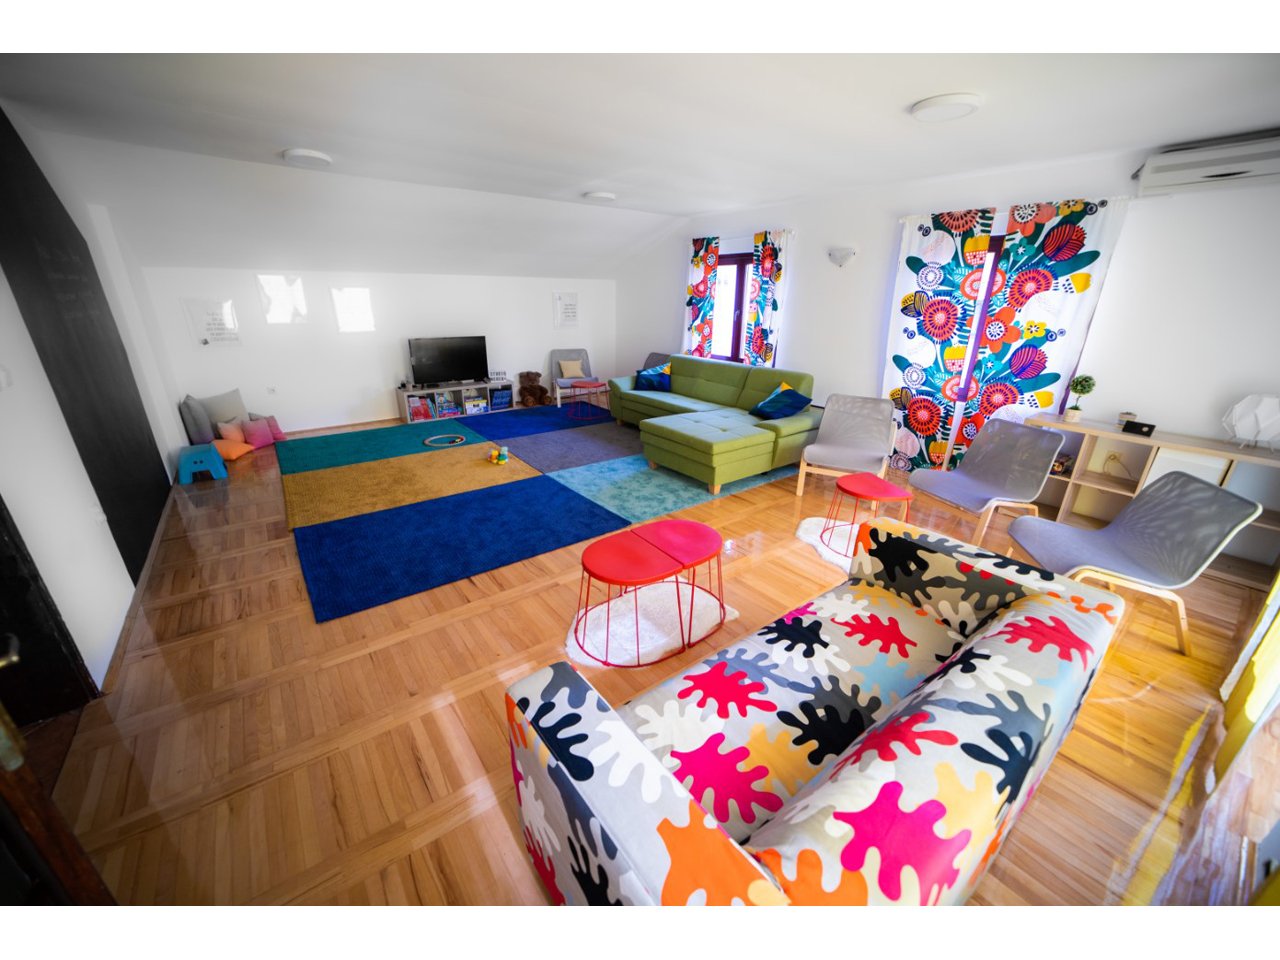 EXTENDED STAY STUDIO NERED Kids birthdays Beograd